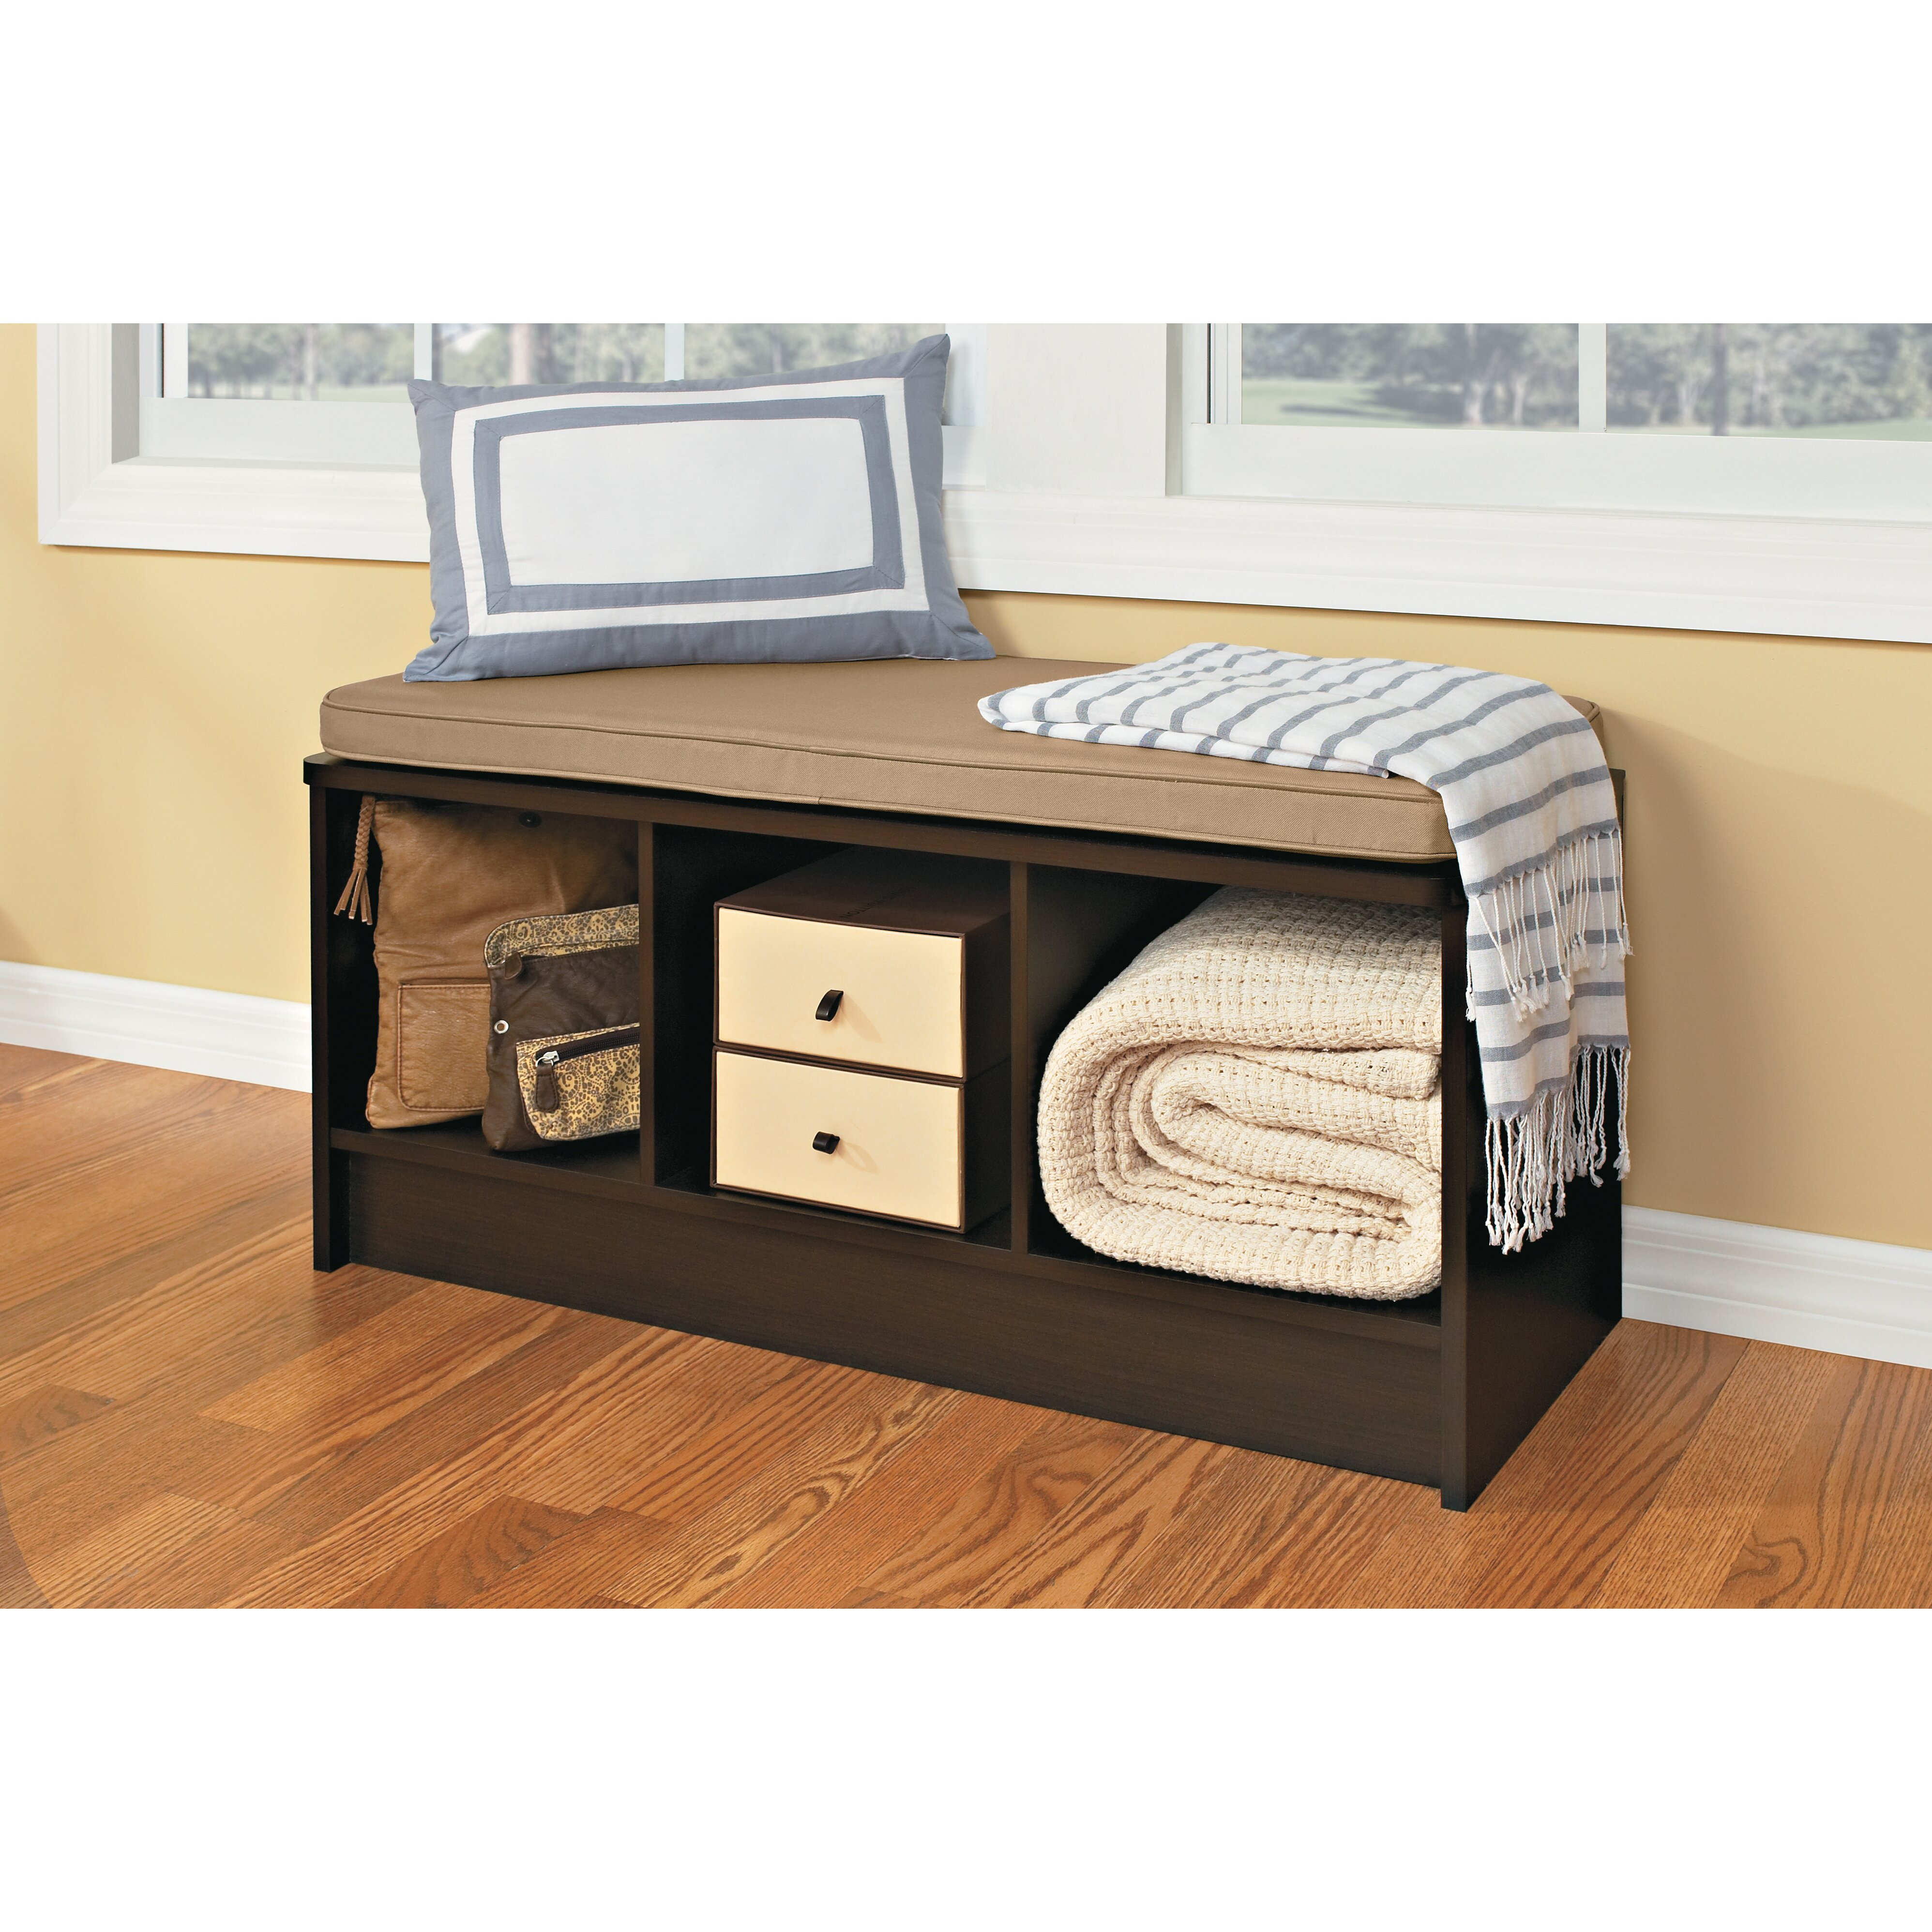 Closetmaid Cubeicals 3 Cube Storage Bench Reviews Wayfair